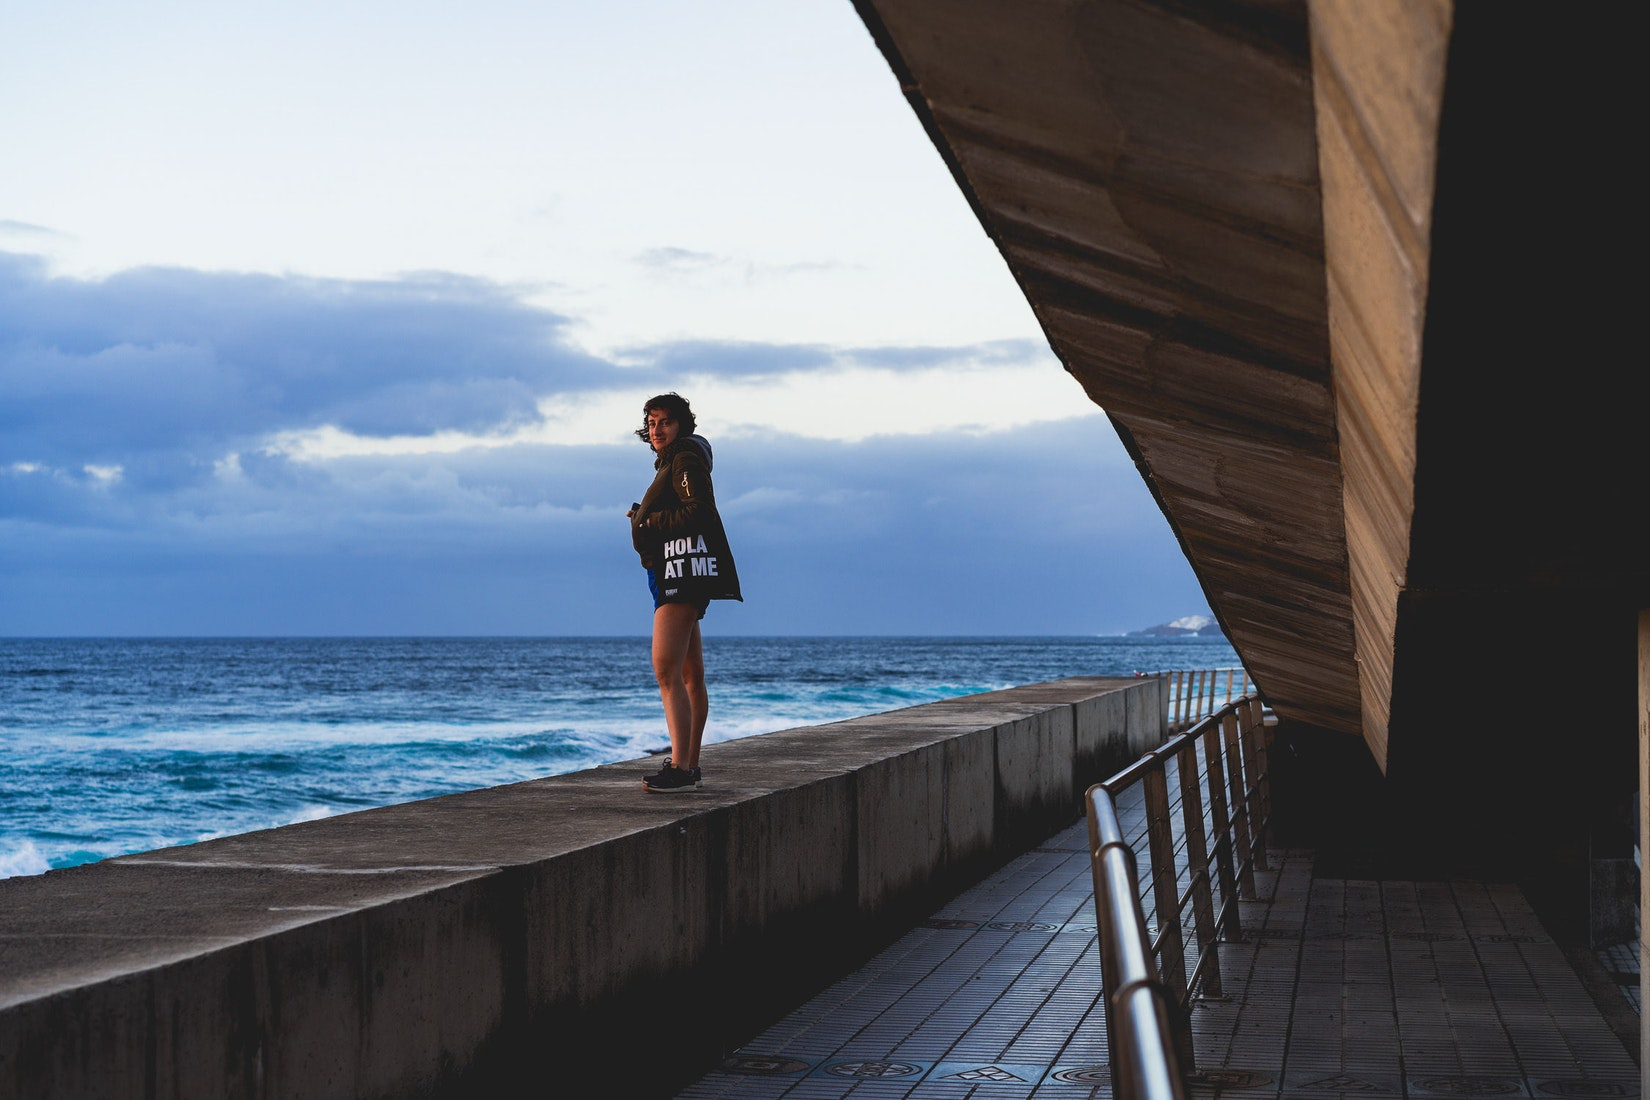 Girl standing on a ledge by the ocean